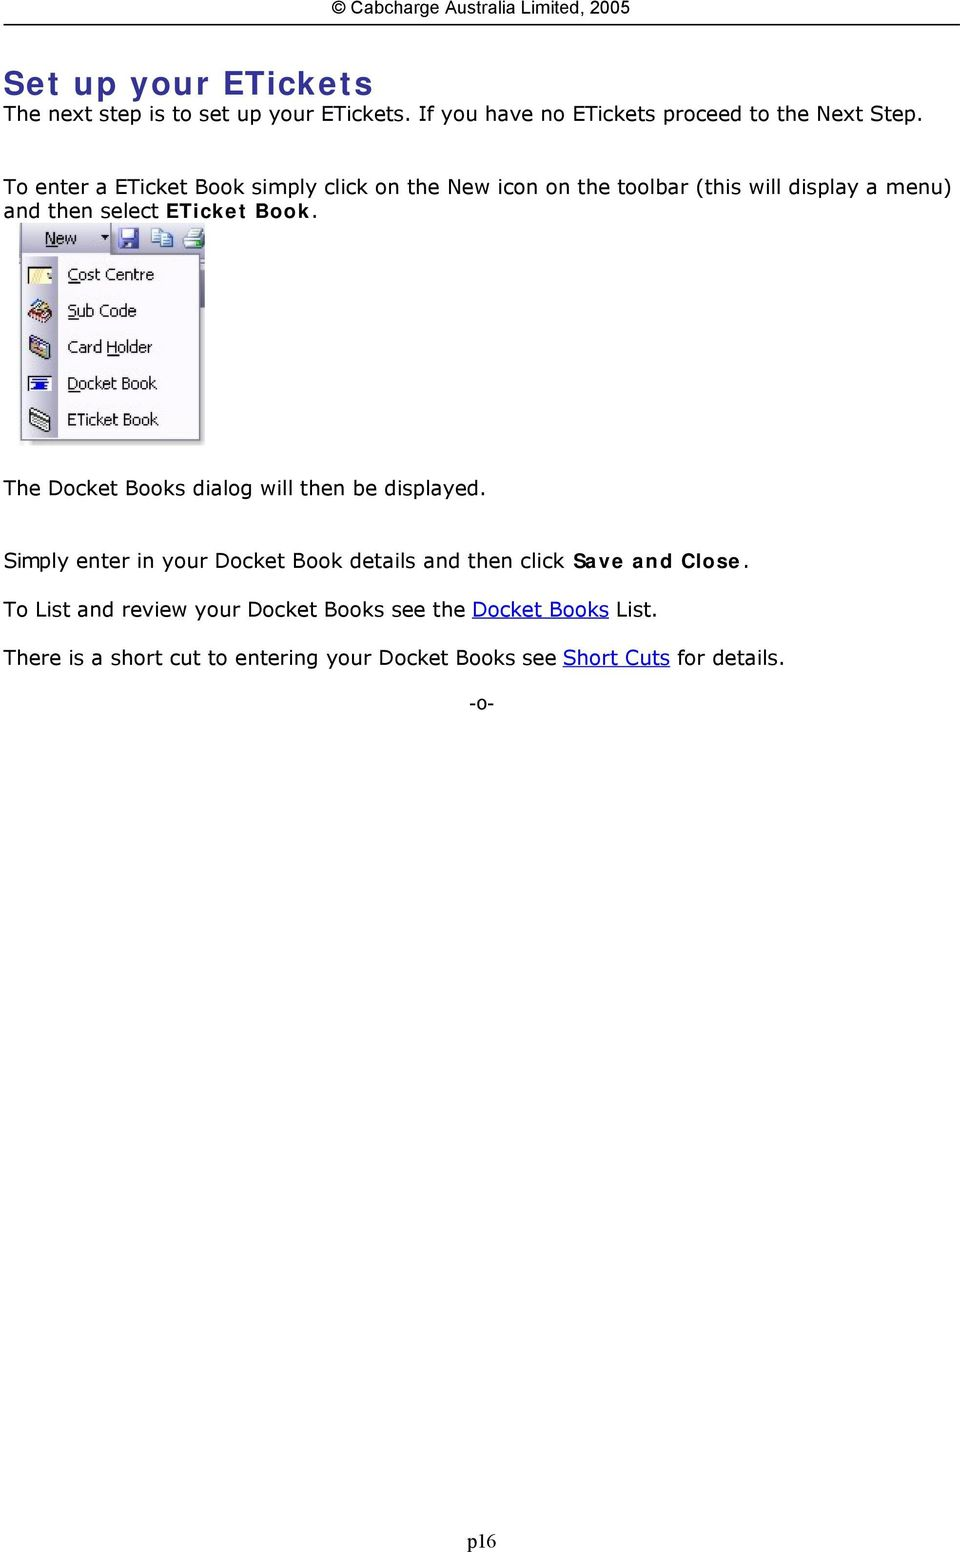 The Docket Books dialog will then be displayed. Simply enter in your Docket Book details and then click Save and Close.